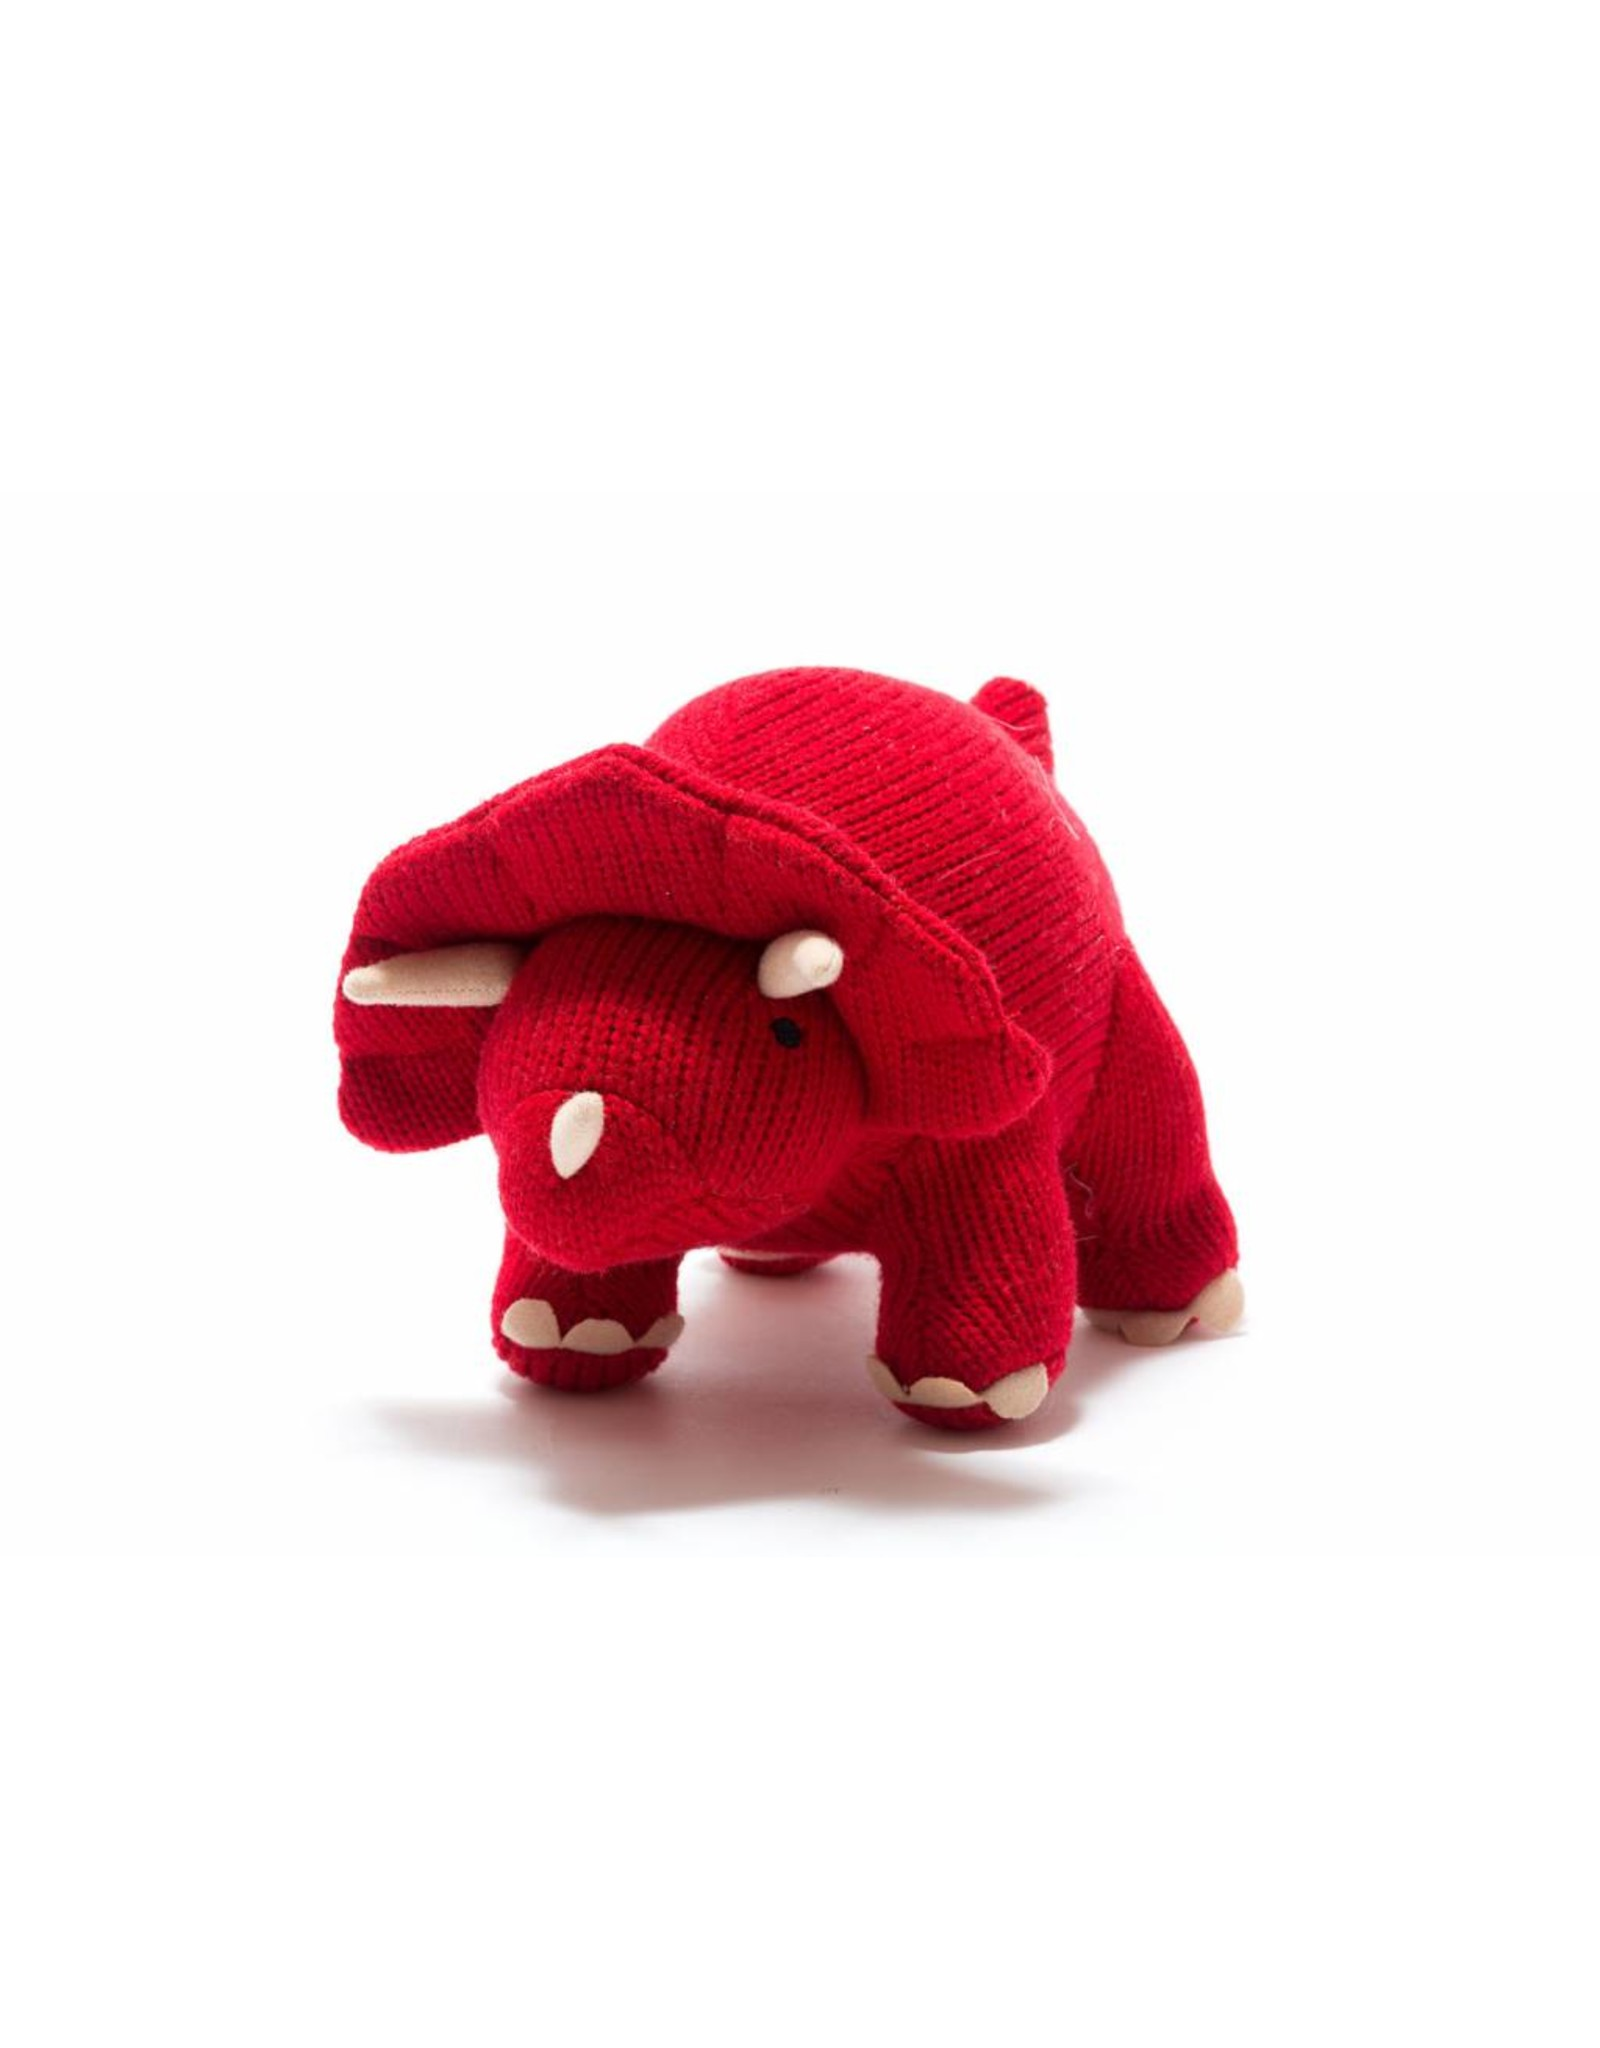 Best Years Red Triceratops Knitted Dinosaur Soft Toy